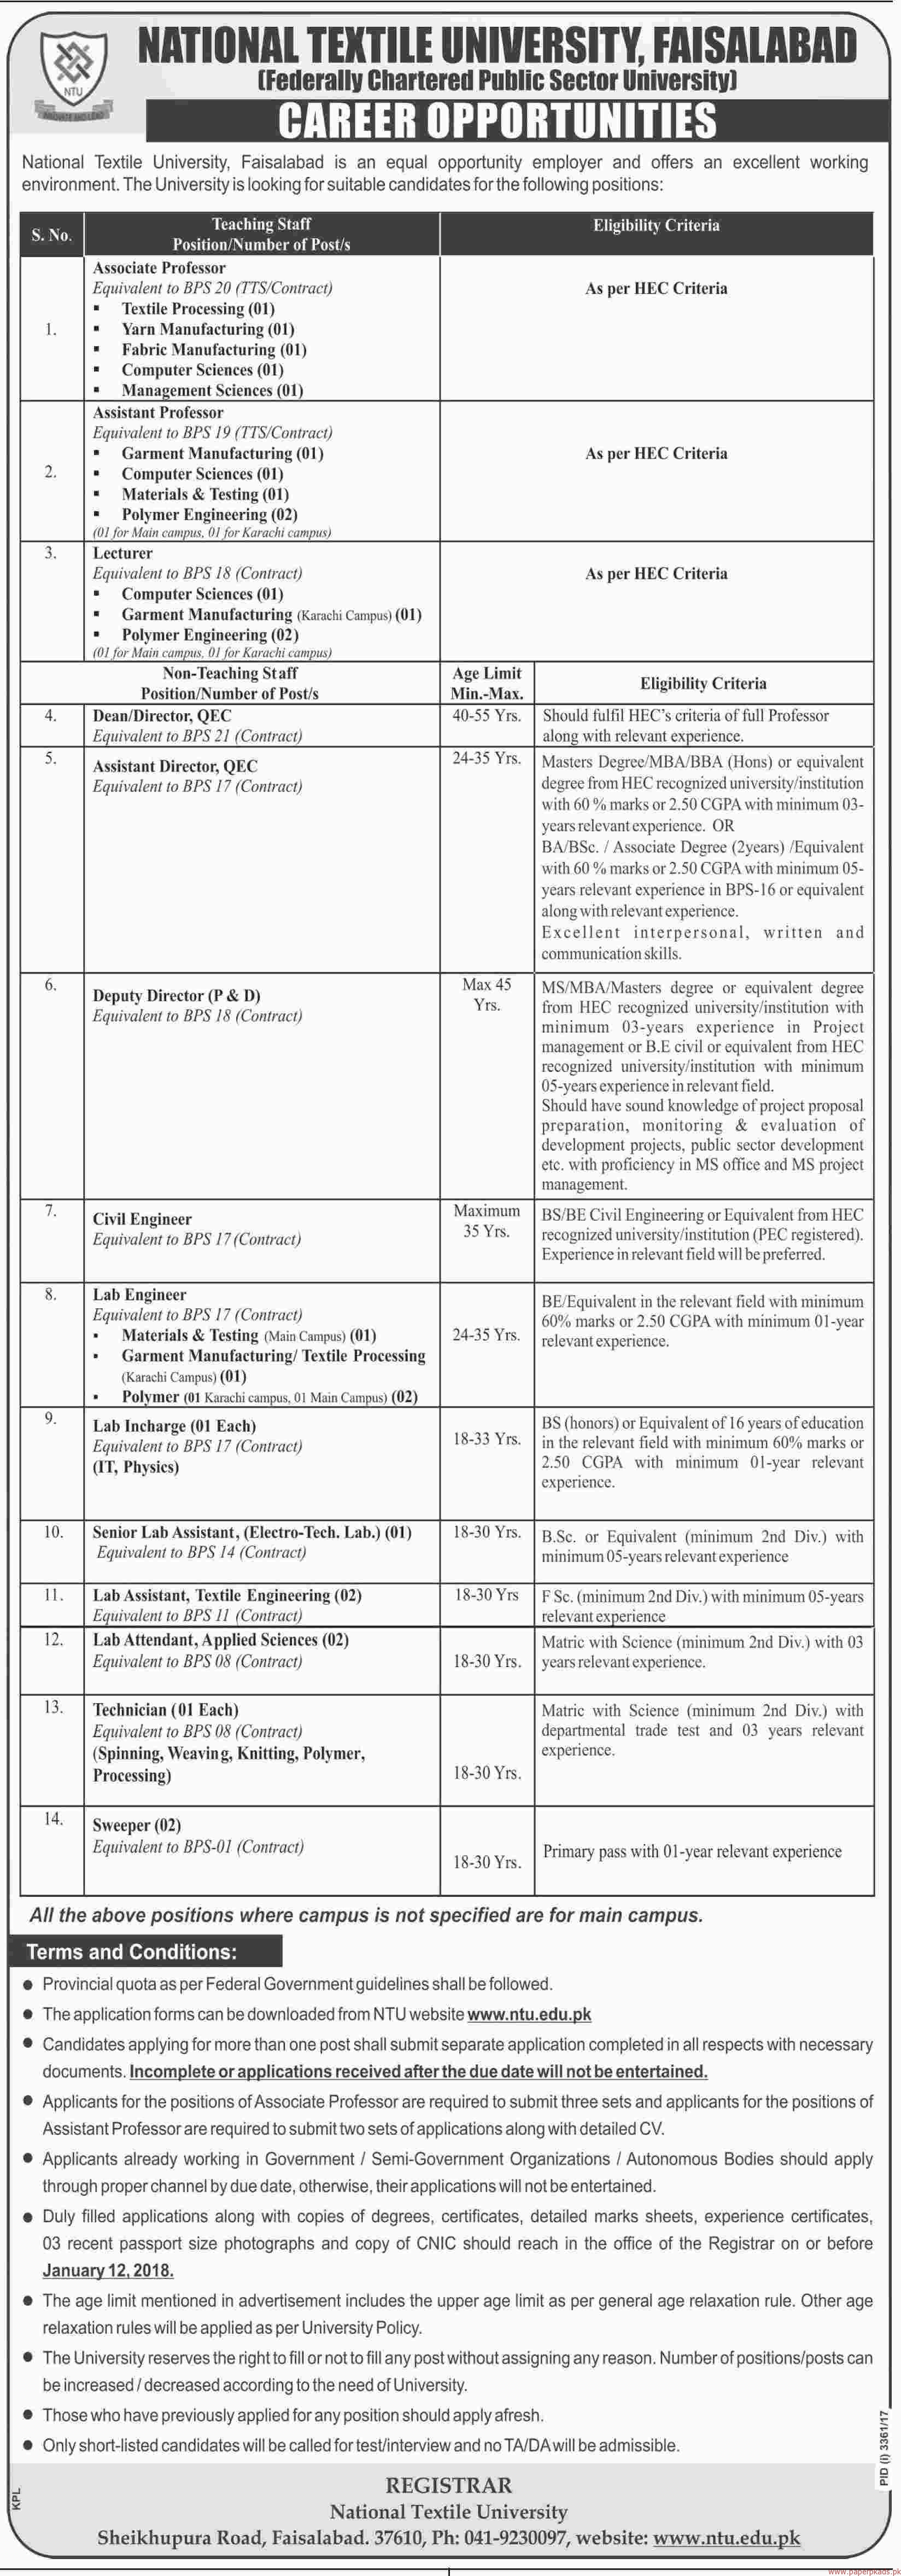 National Textile University Faisalabad Jobs 2017